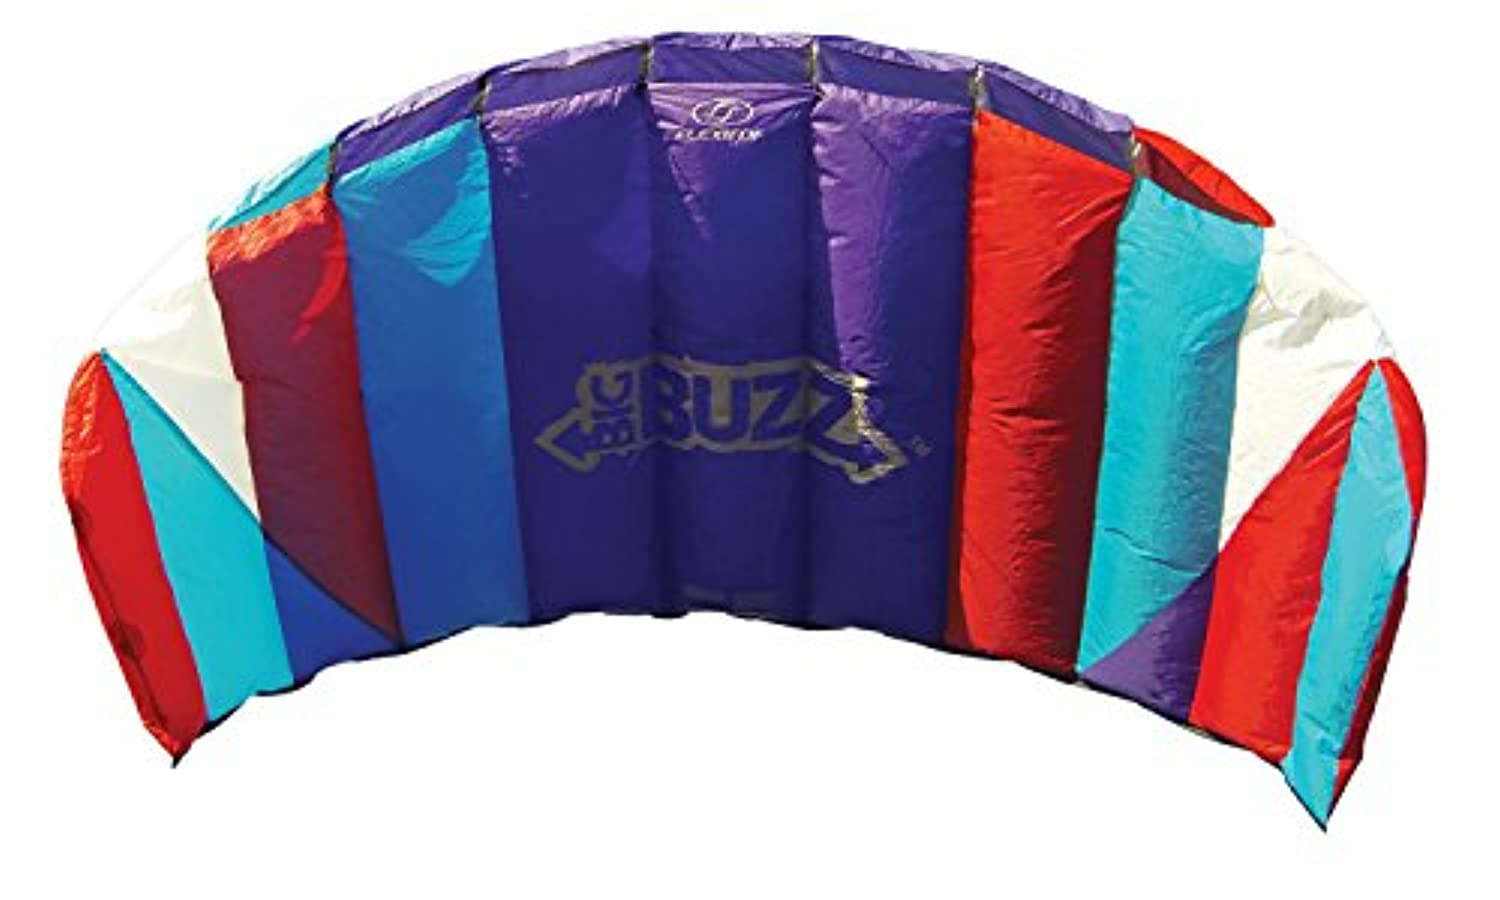 Flexifoil 2.05m Power Kite with 90 Day Money Back Guarantee! - Big Buzz Sport Foil By World Record Winning Designer of 2-line and 4-line Power Kites - Safe, Reliable and Durable Family Orientated Power Kiting, Kite Training and Introductory Traction Kiting